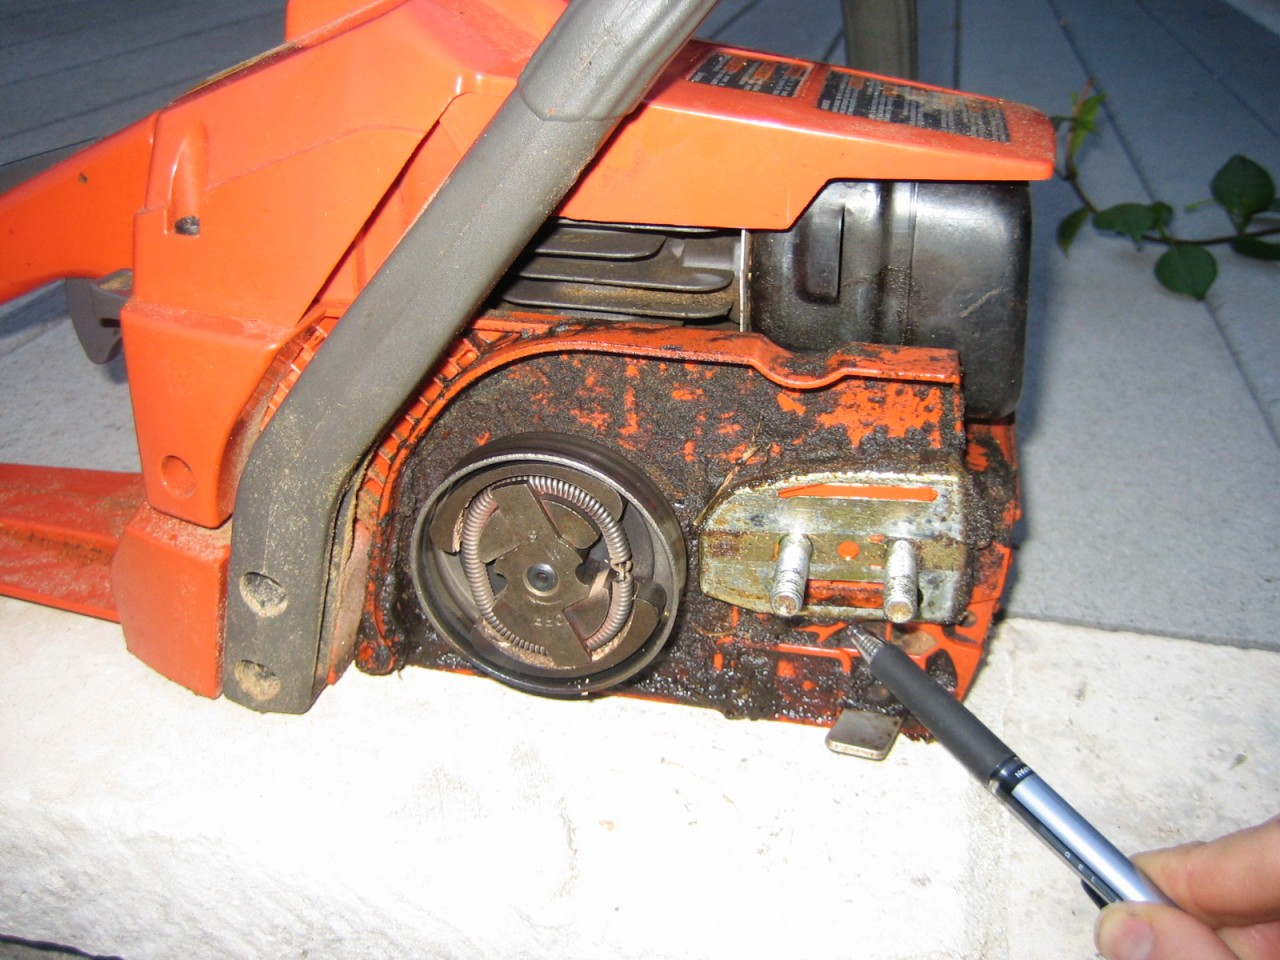 Husqvarna 141 chainsaw no oil on barchain chainsaws forum service maintenance question john husqvarna 141 chainsaw greentooth Images